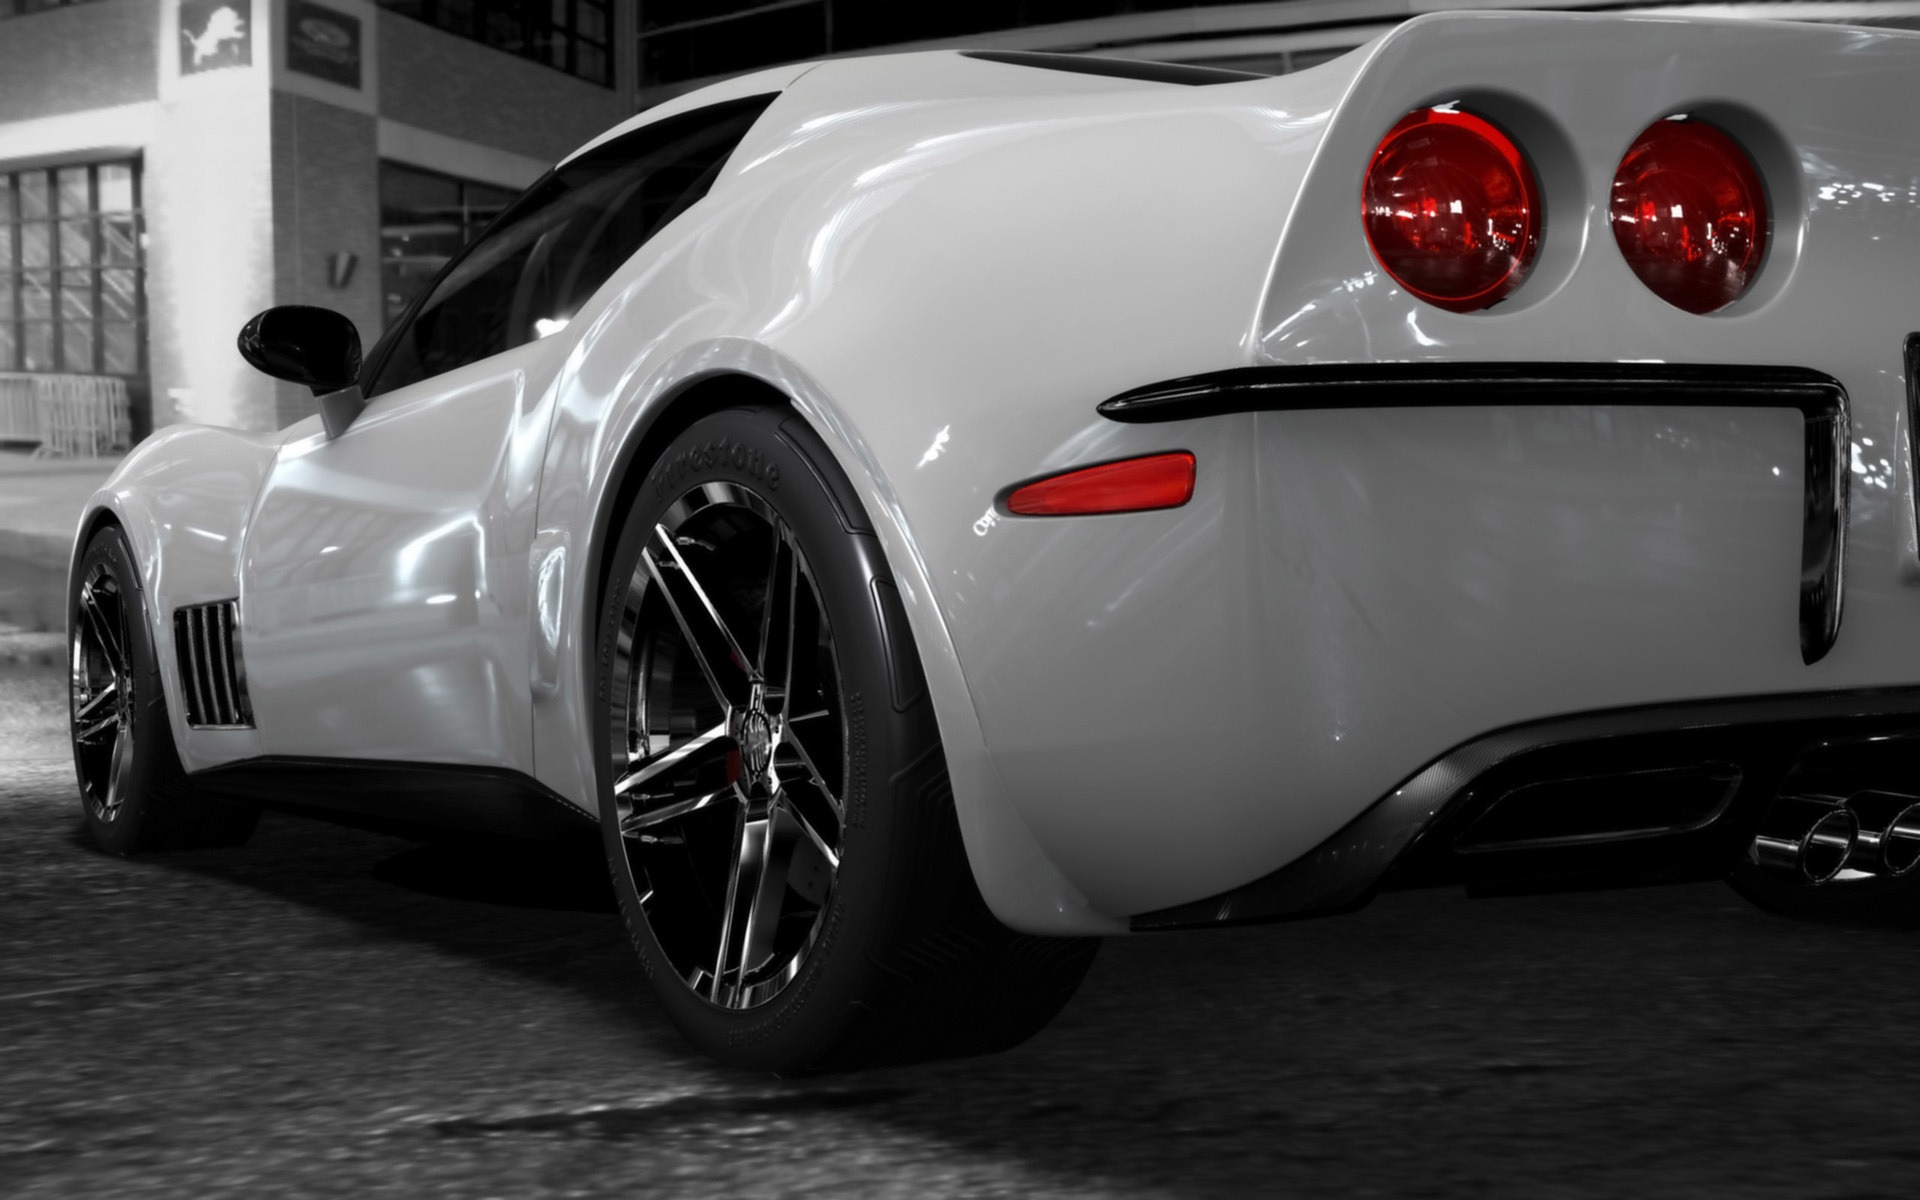 Chevrolet Corvette Jake Edition Wallpaper | HD Car Wallpapers